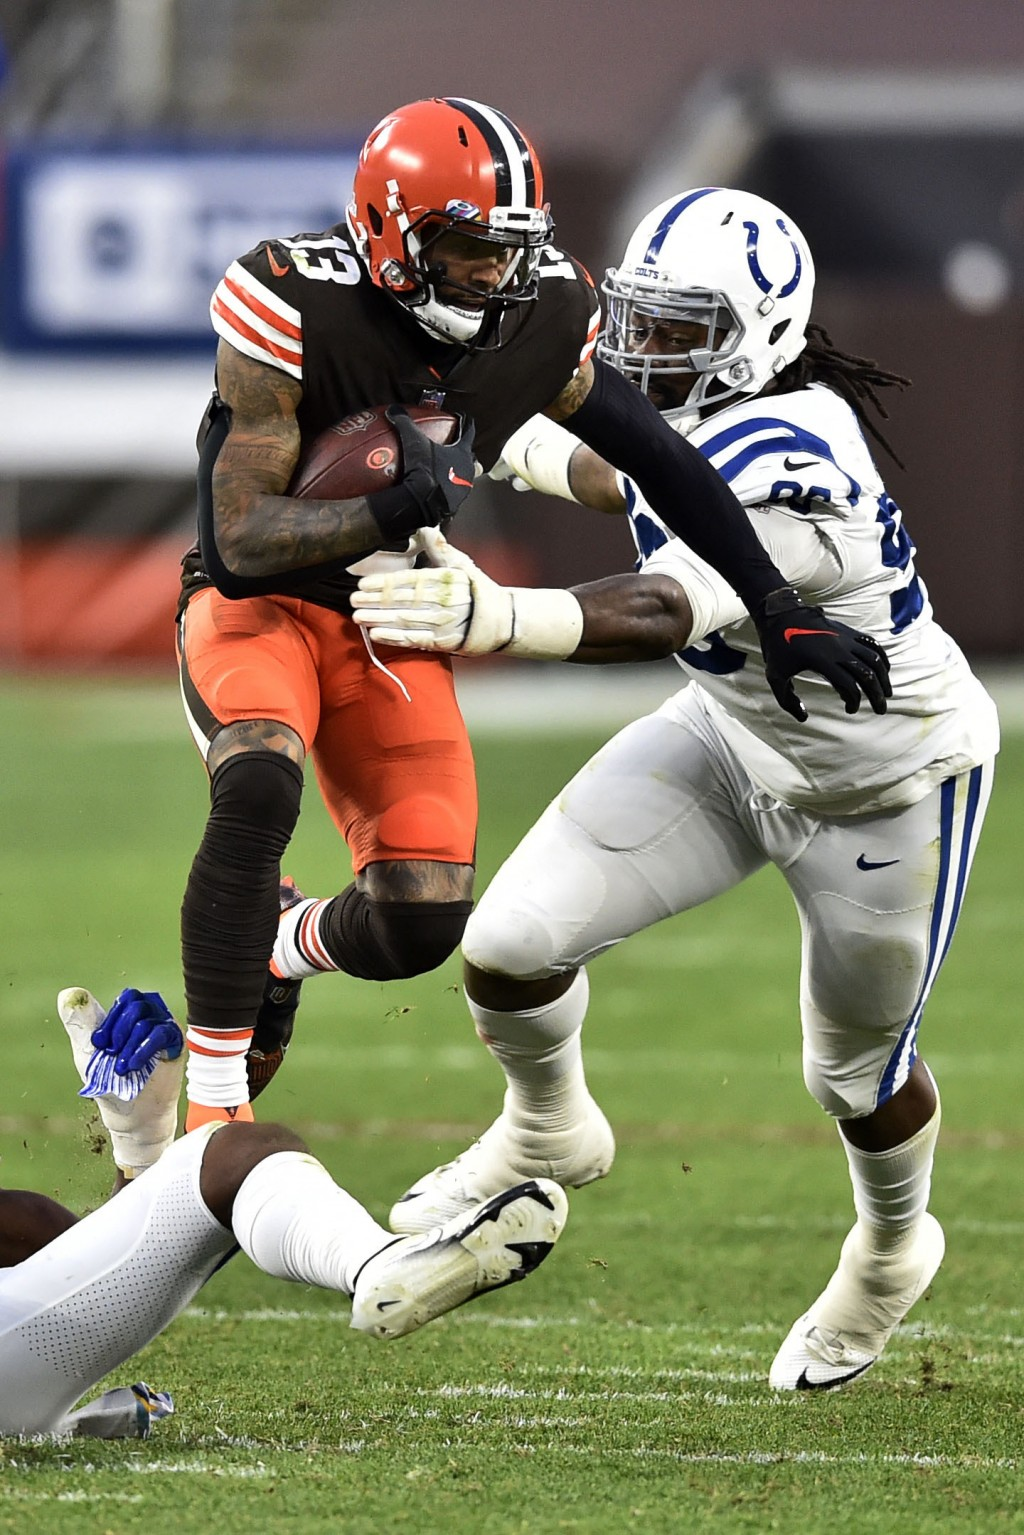 Cleveland Browns wide receiver Odell Beckham Jr. (13) rushes during the second half of an NFL football game against the Indianapolis Colts, Sunday, Oc...